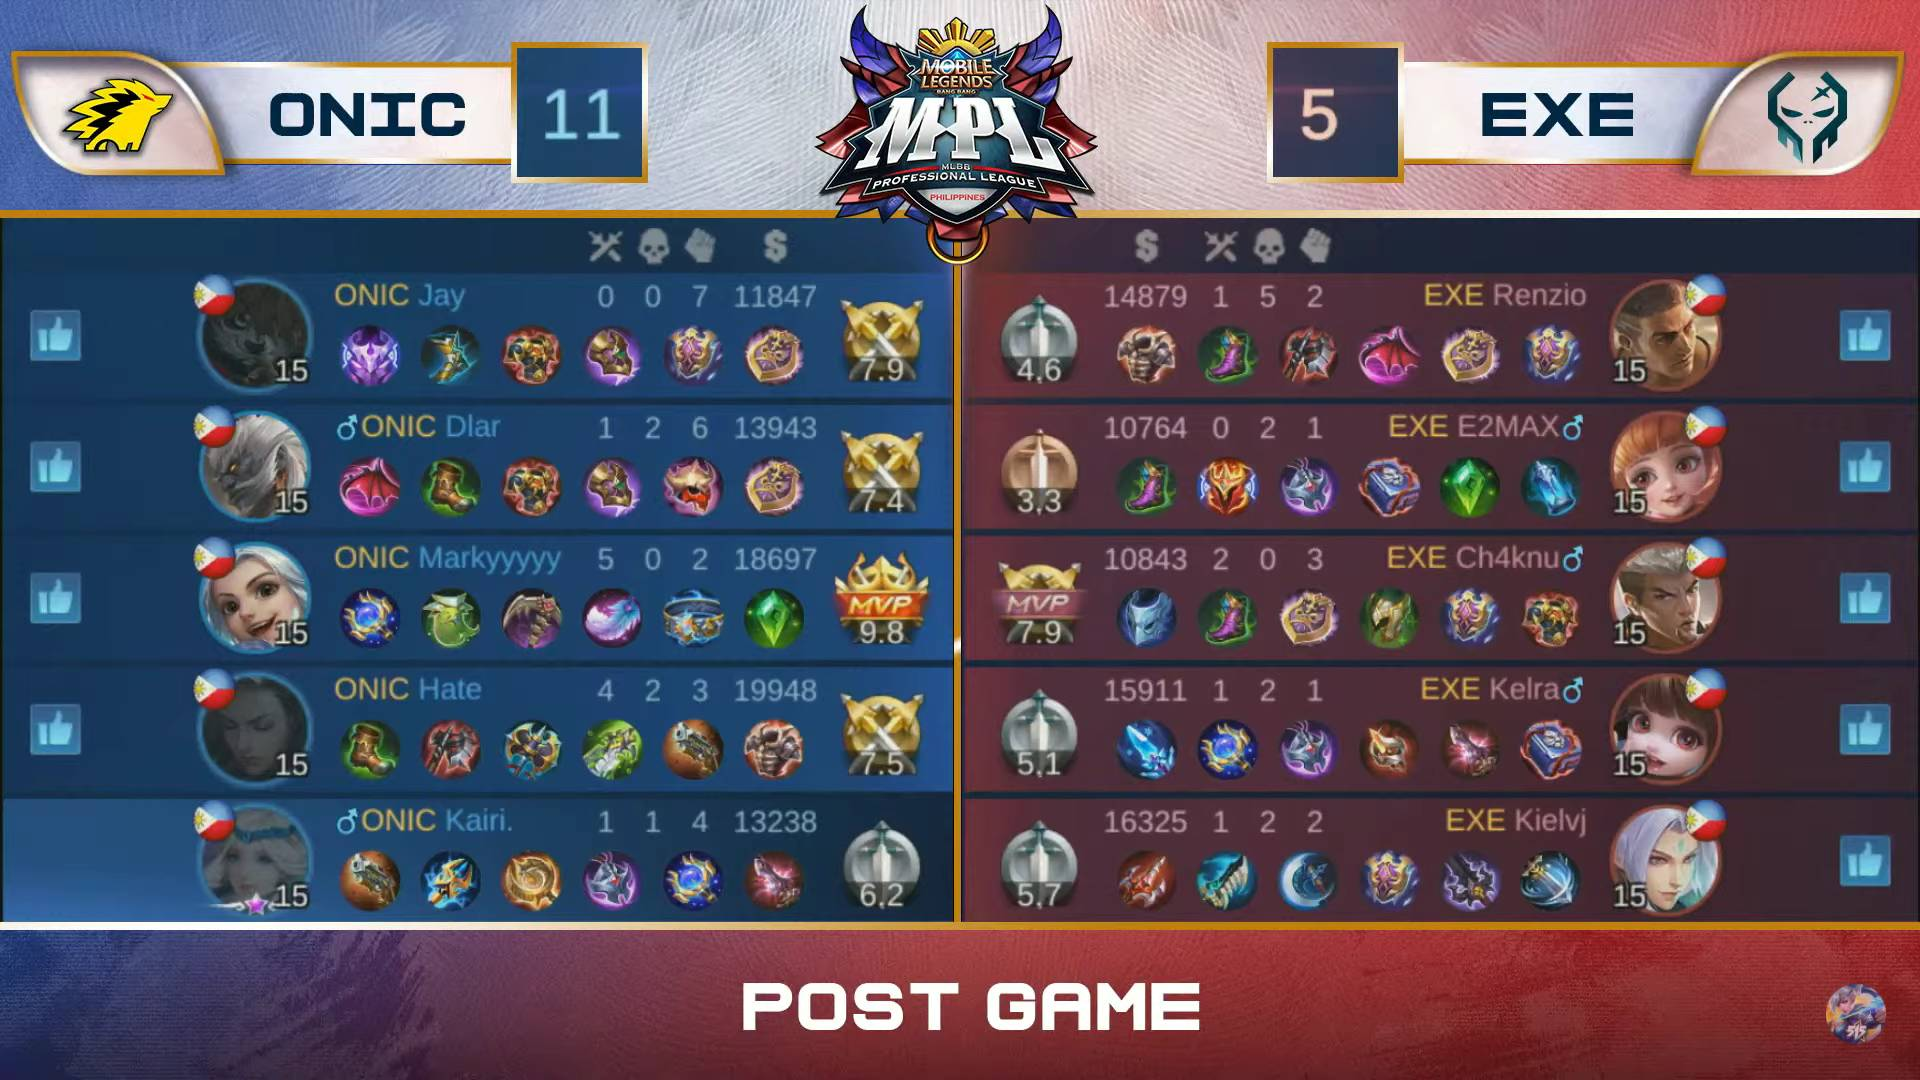 MPL-PH-Season-7-ONIC-def-Execration-Game-3 Hate deals Execration heartbreak as ONIC rises to third in MPL PH ESports Mobile Legends MPL-PH News  - philippine sports news